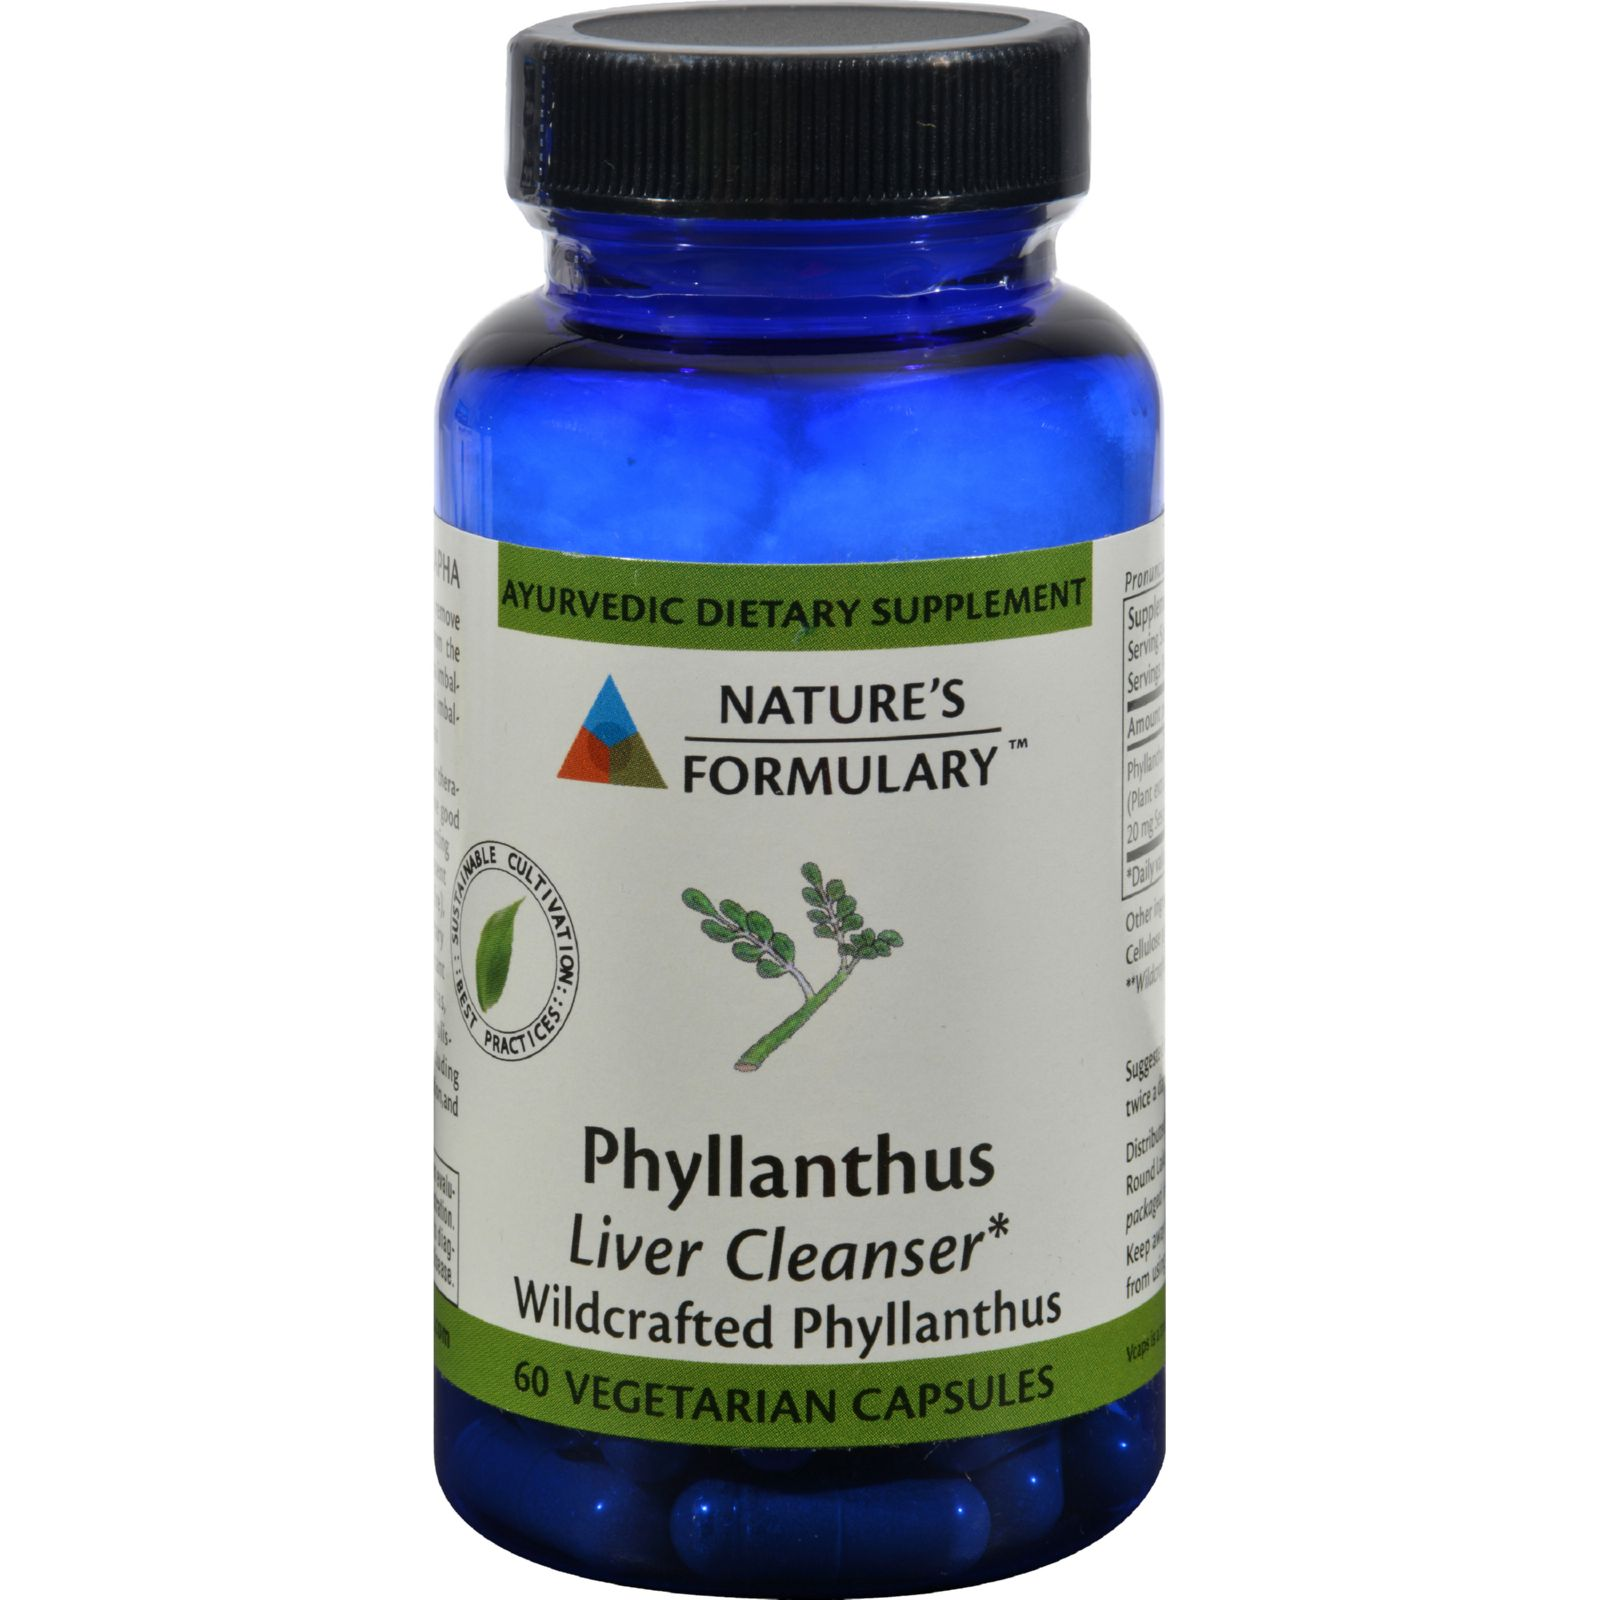 Nature's Formulary Phyllanthus - 60 Vegetarian Capsules